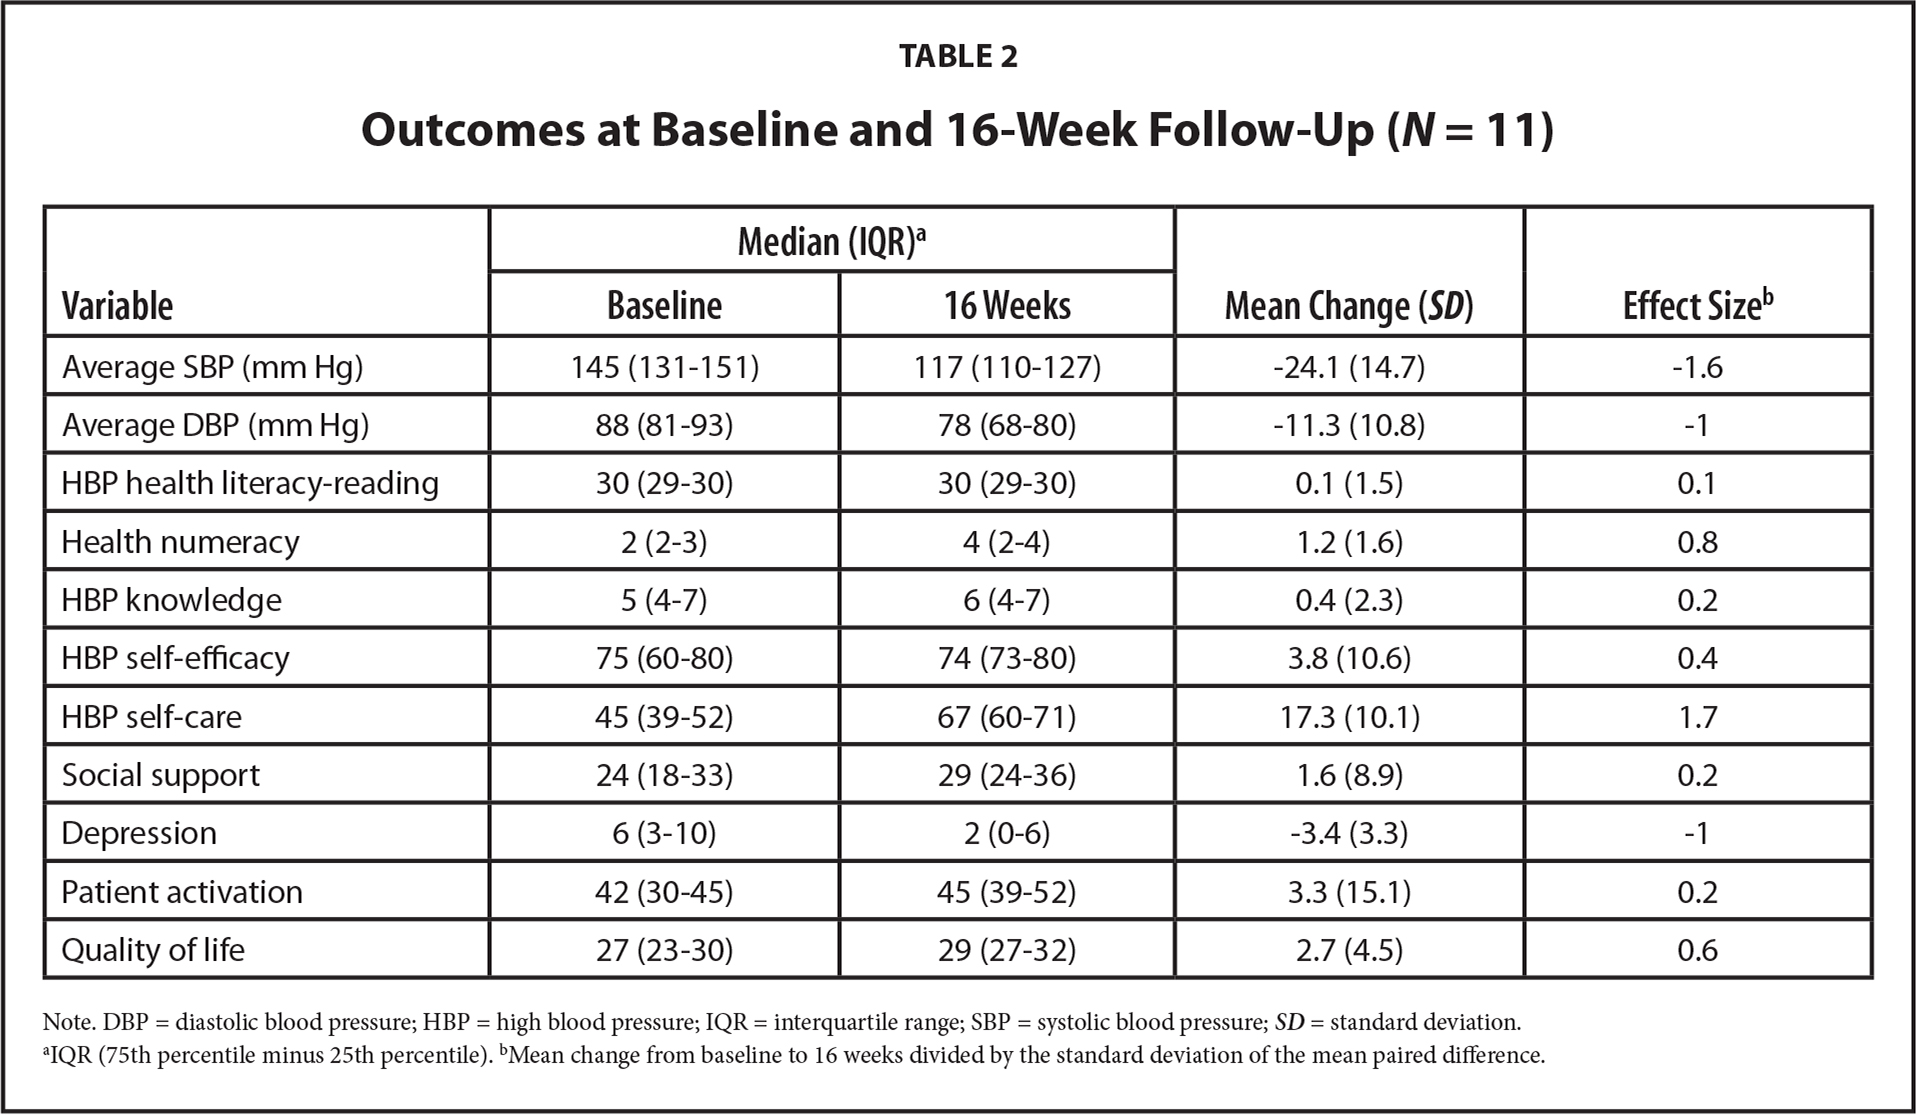 Outcomes at Baseline and 16-Week Follow-Up (N = 11)